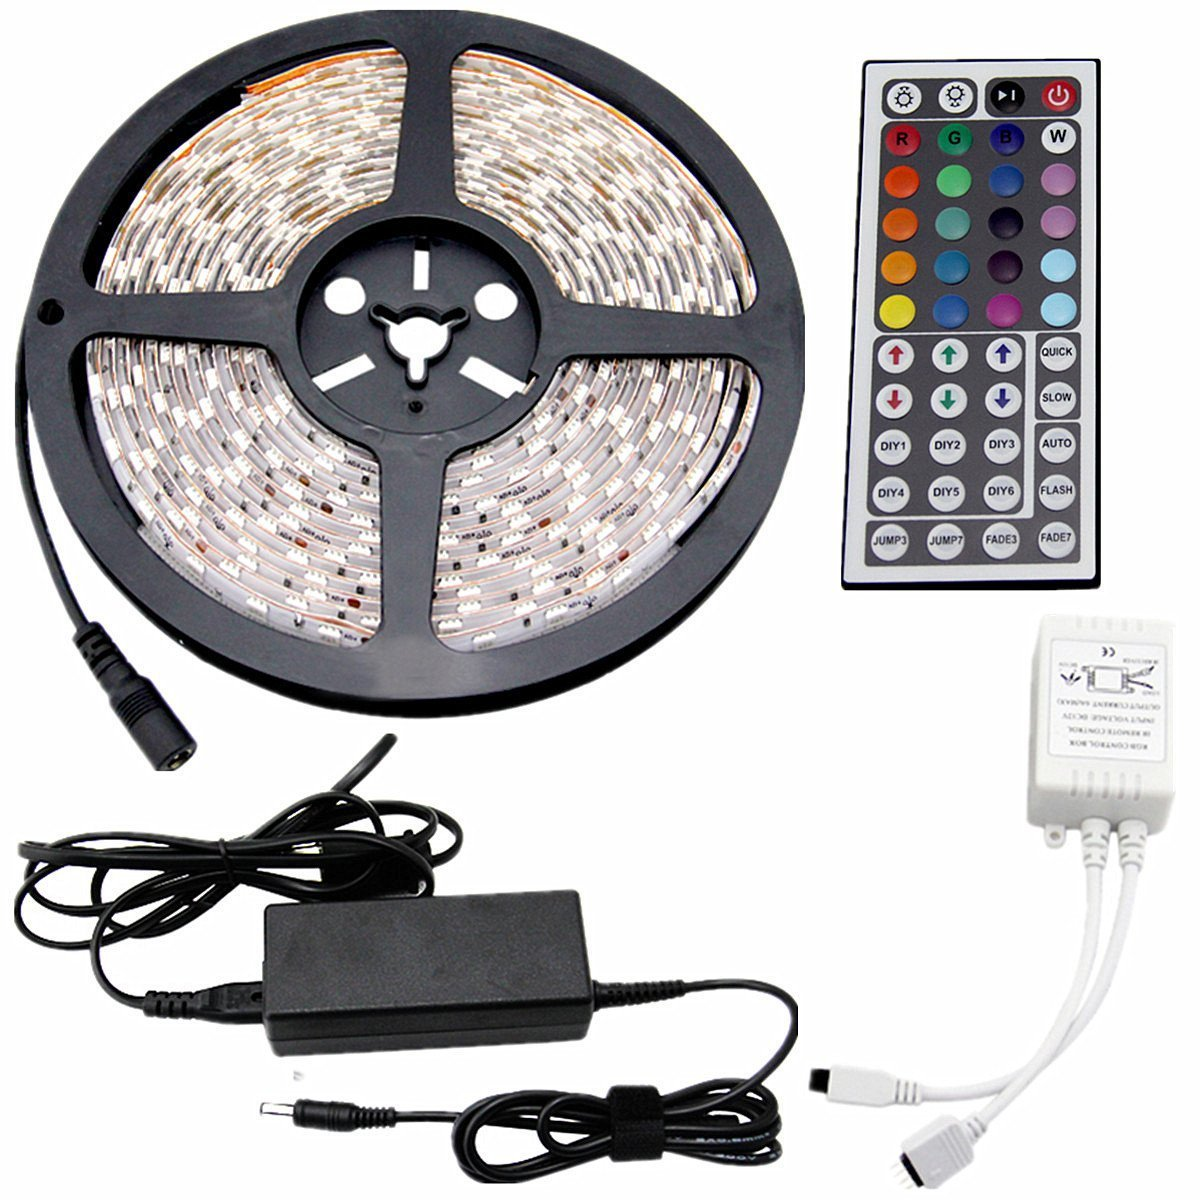 CARYLED 16.4ft 5M Waterproof Rope Lights 300 LED 5050 SMD Color Changing RGB Flexible LED Strip Light + 12V 6A Power Supply + Remote + IR Controller Muliticolored by CYLED (Image #4)